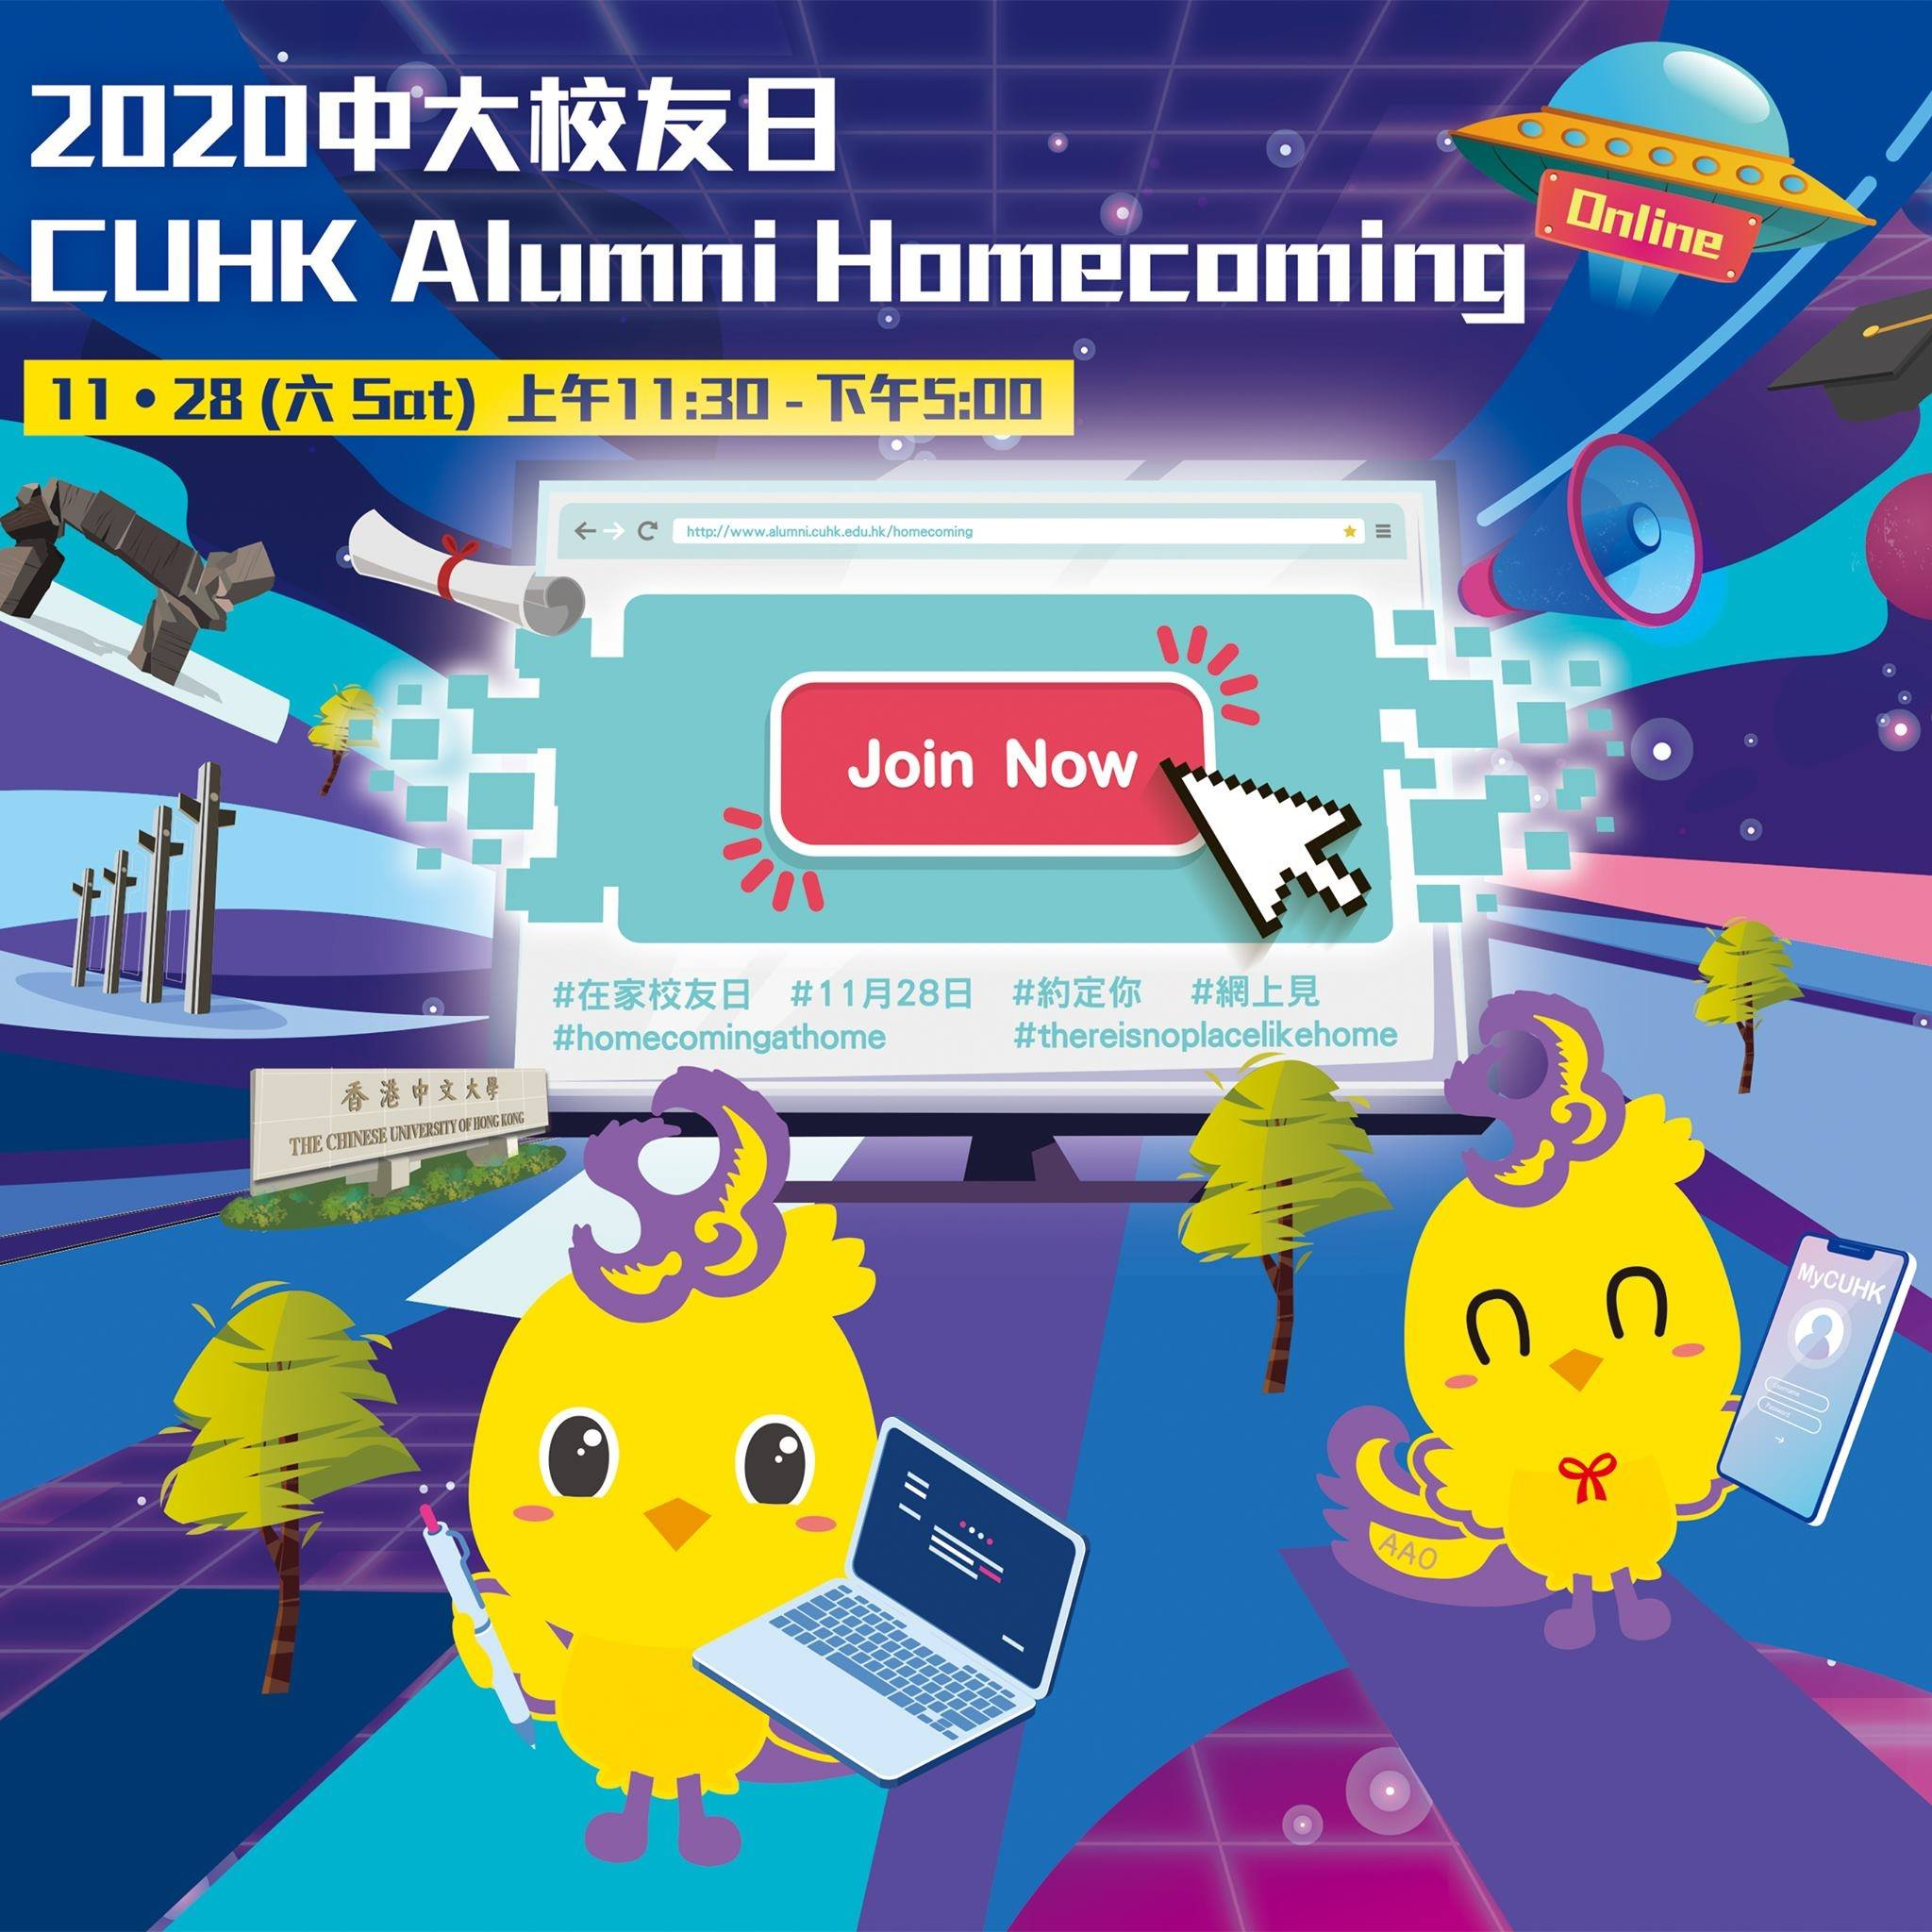 CUHK Alumni Homecoming Day 2020